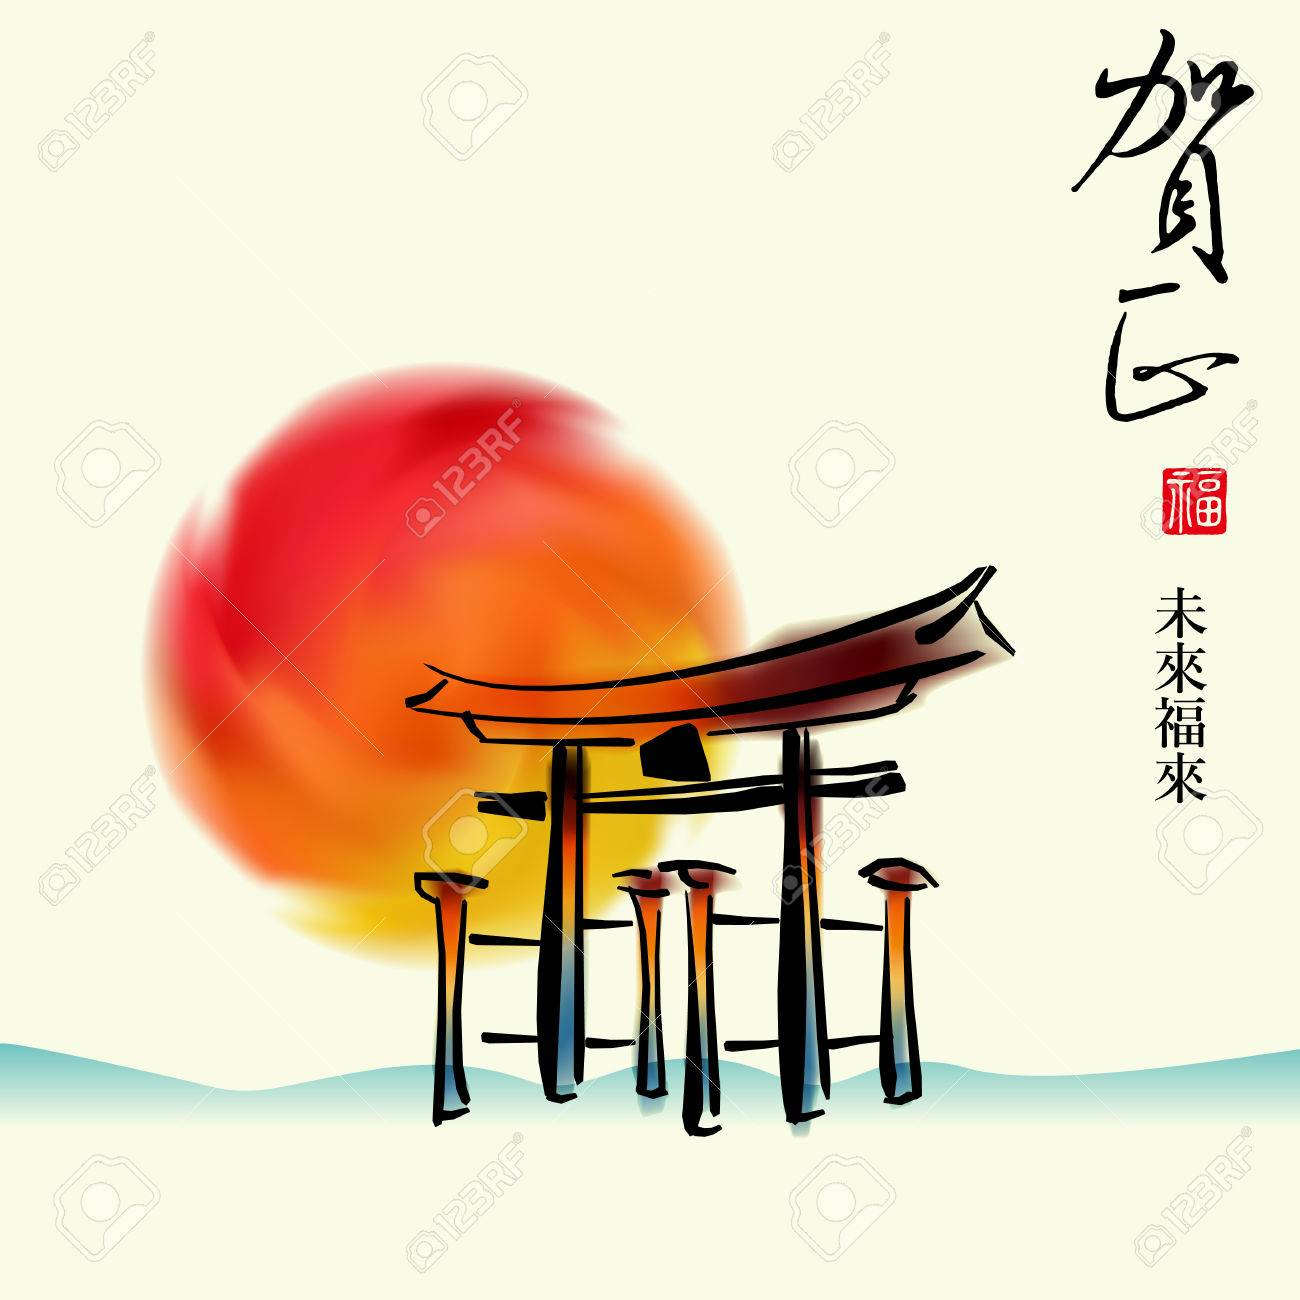 New year theme creative greeting cards posters japan door new year theme creative greeting cards posters japan door kanji meaning happy m4hsunfo